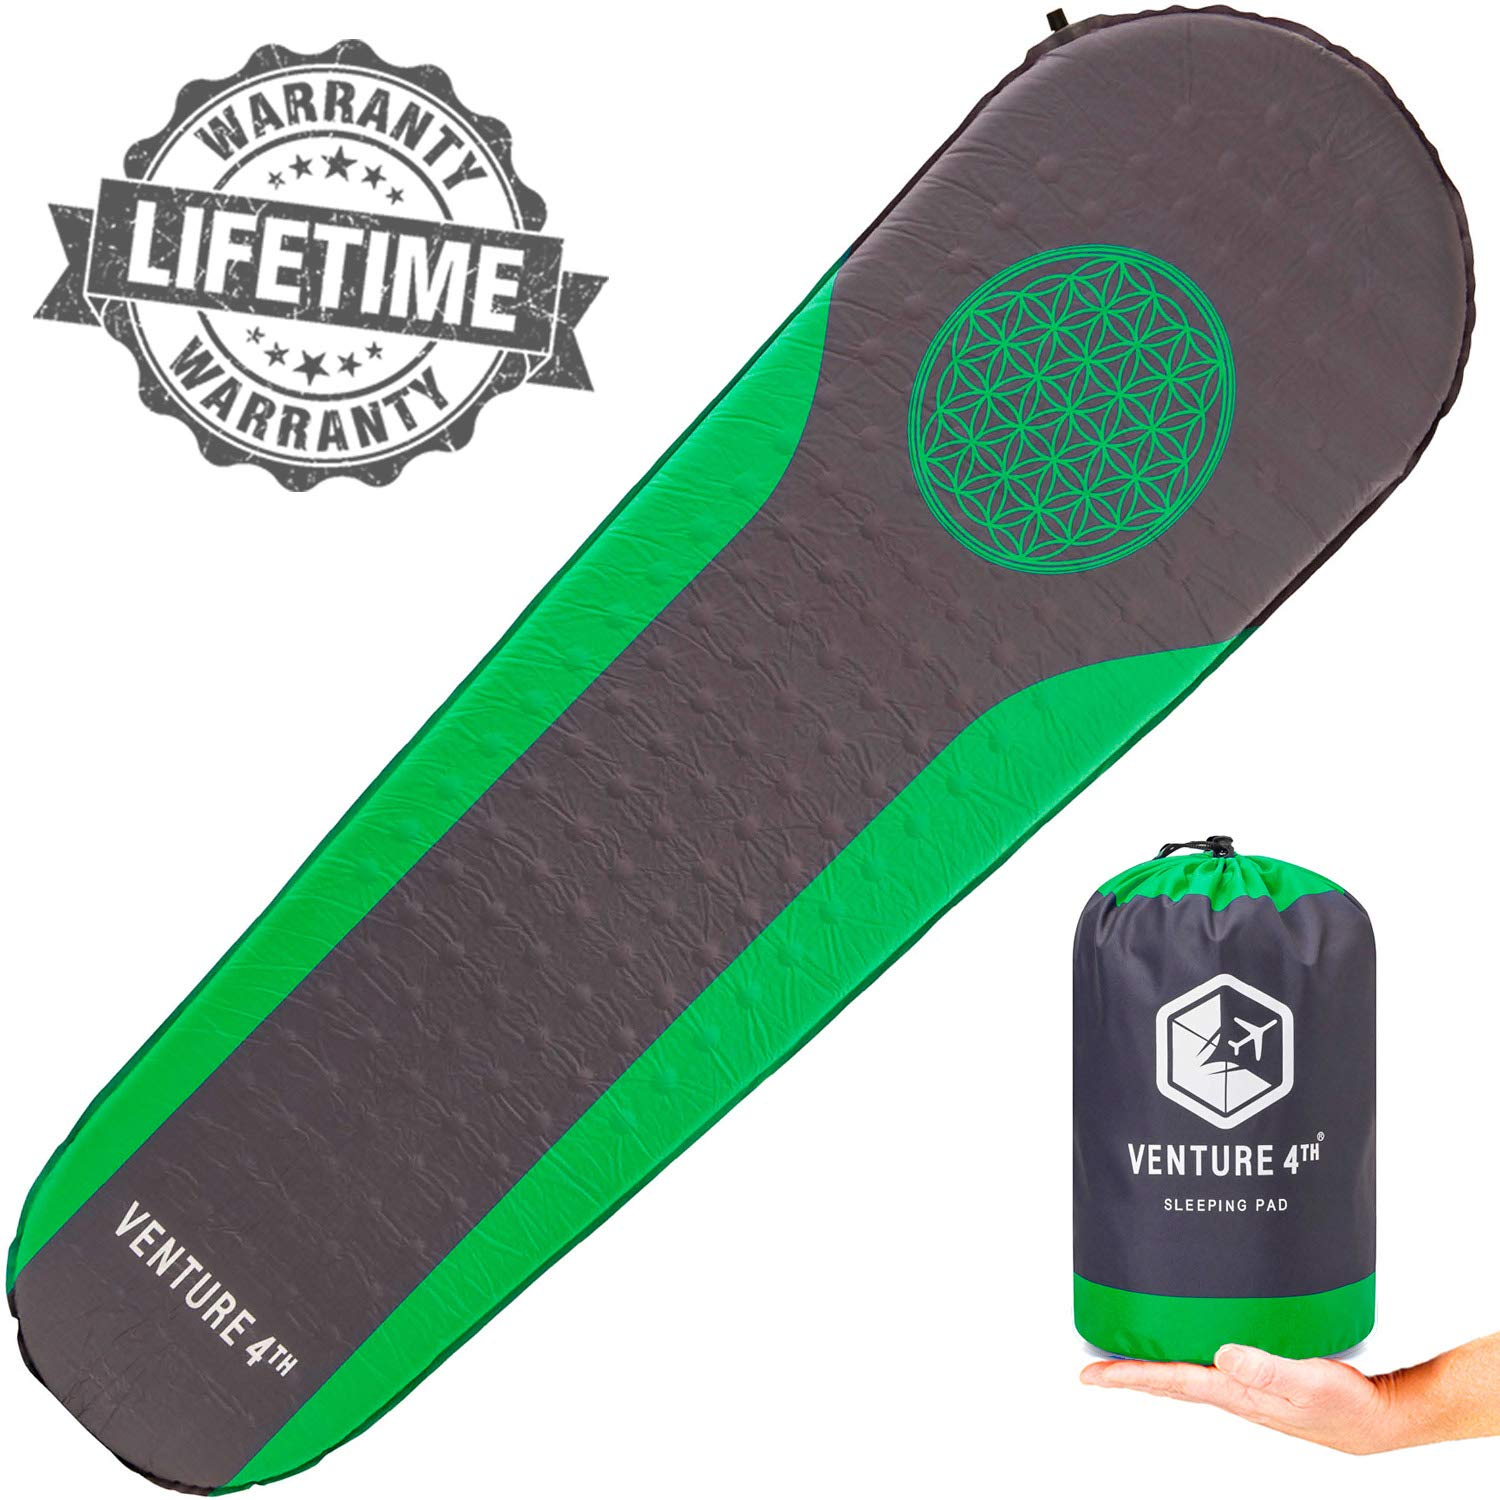 VENTURE 4TH Self Inflating Camping Pad - No Pump or Lung Power Required - Warm, Quiet and Supportive Camp Mattress - Sleeping Bag Air Mattress (Green/Gray) by VENTURE 4TH